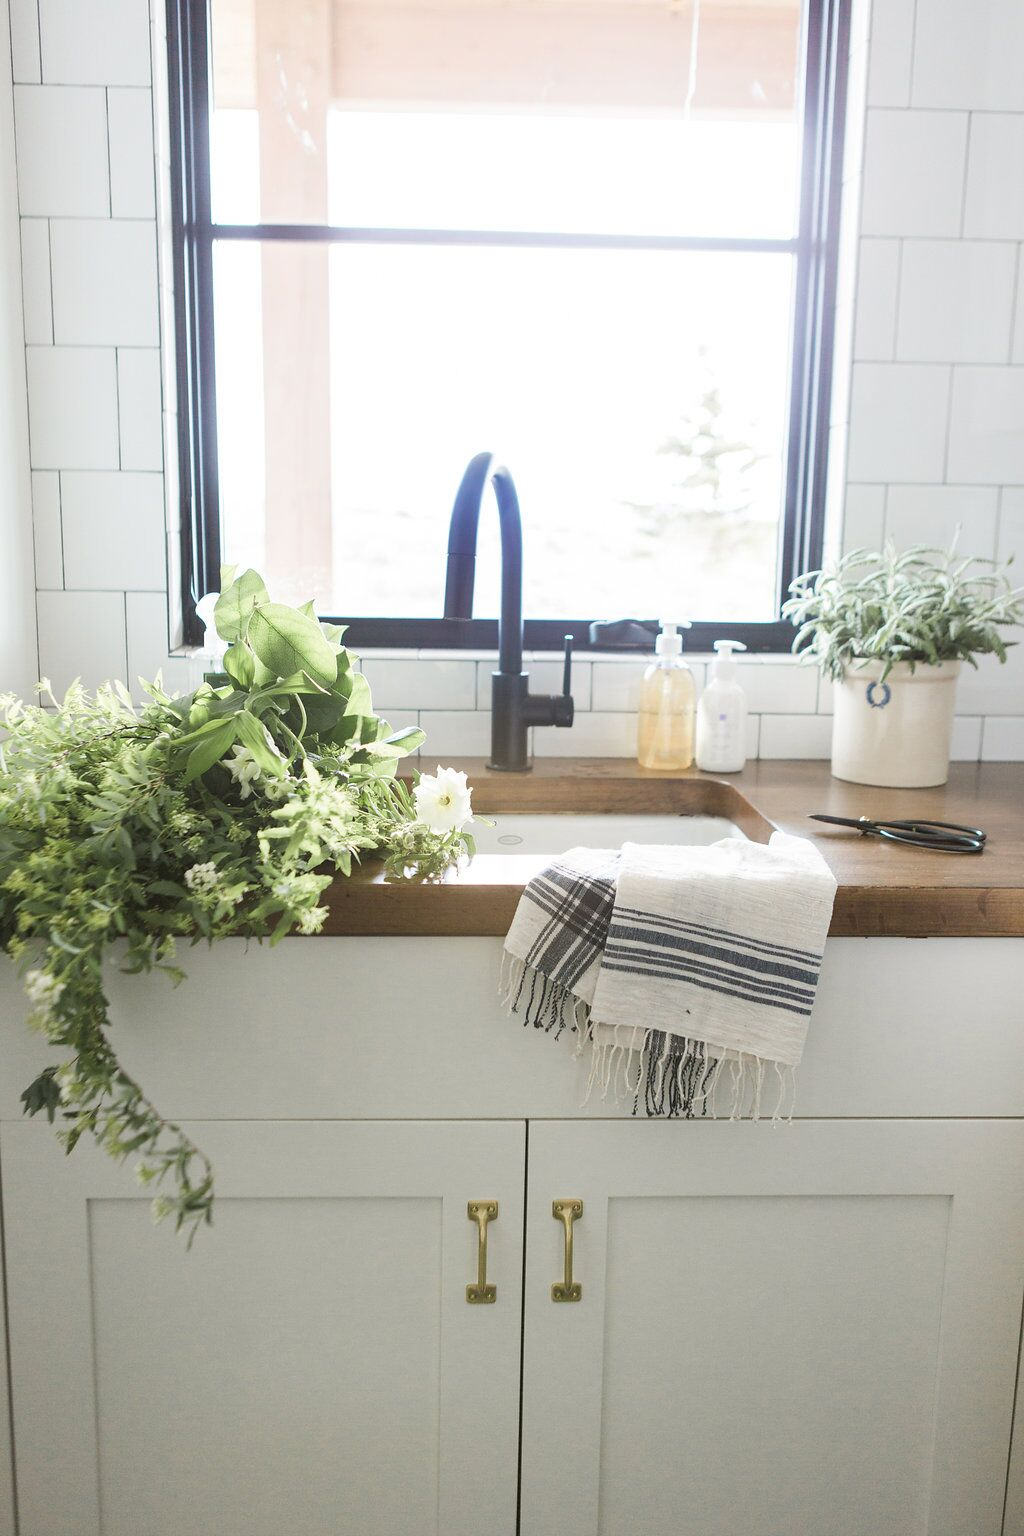 Large kitchen sink with wooden counter top